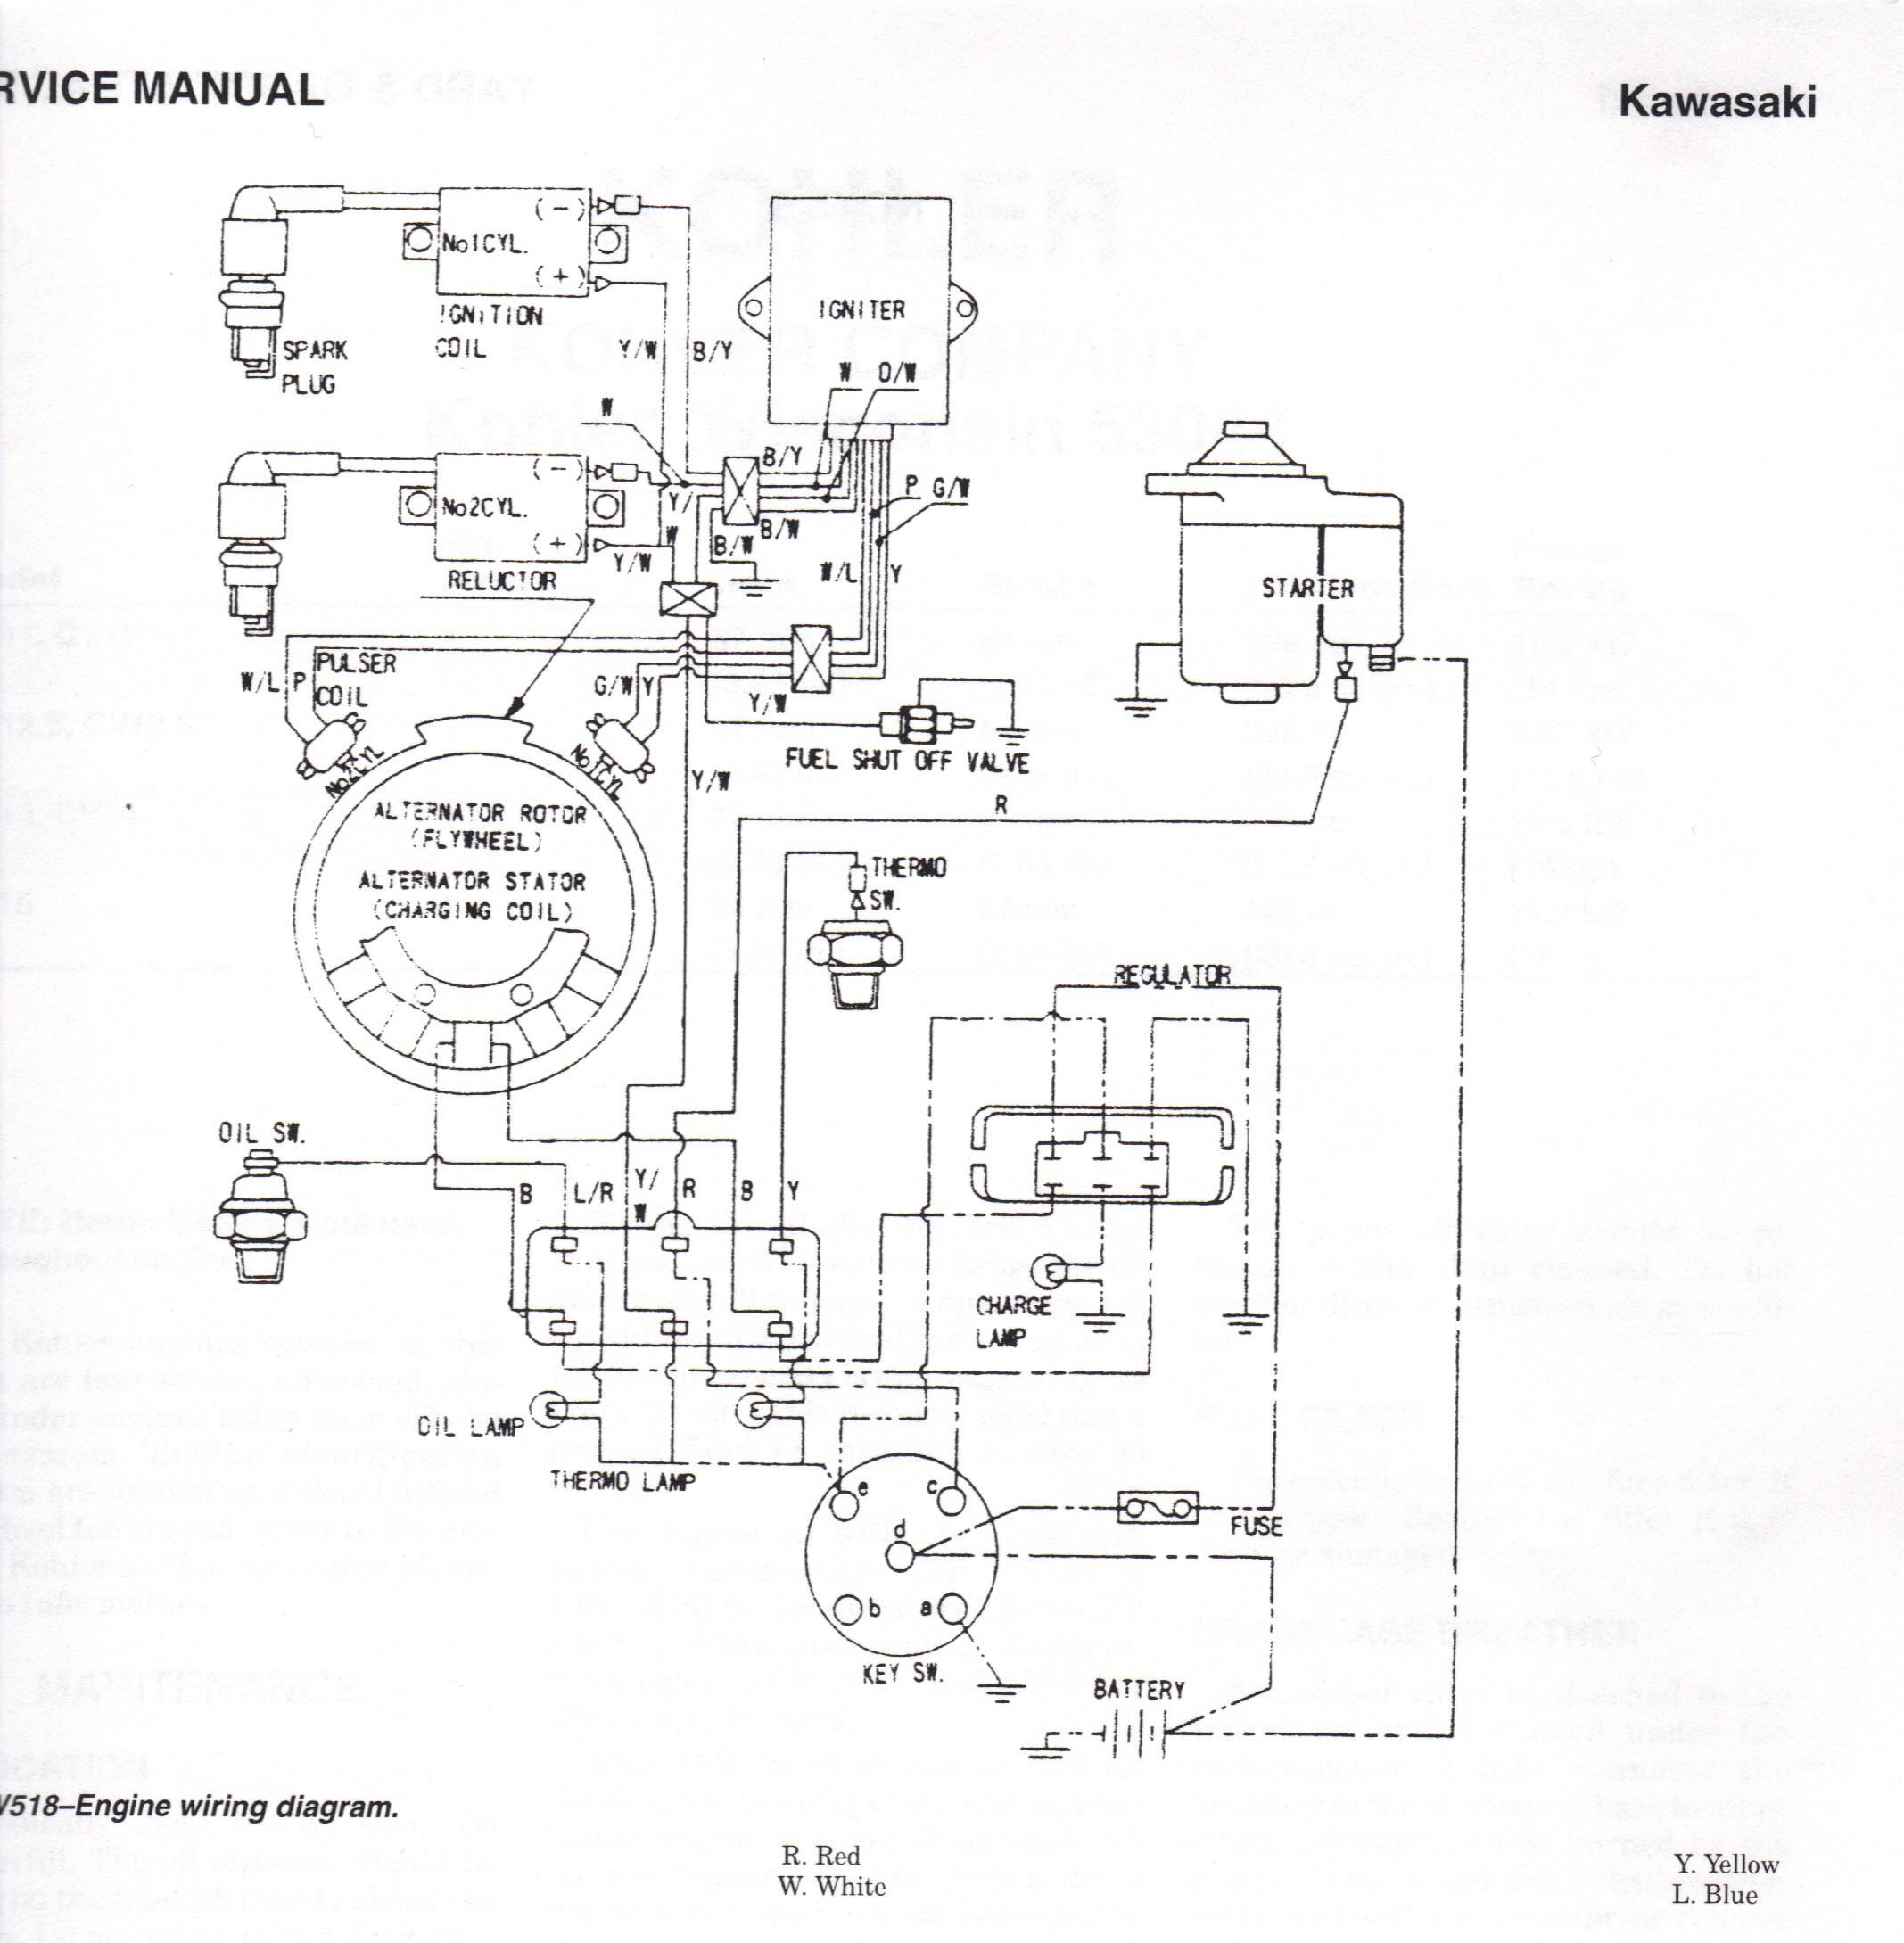 wiring diagrams for 757 john deere 25 hp kawasaki diagram   Yahoo Image Search Results | John